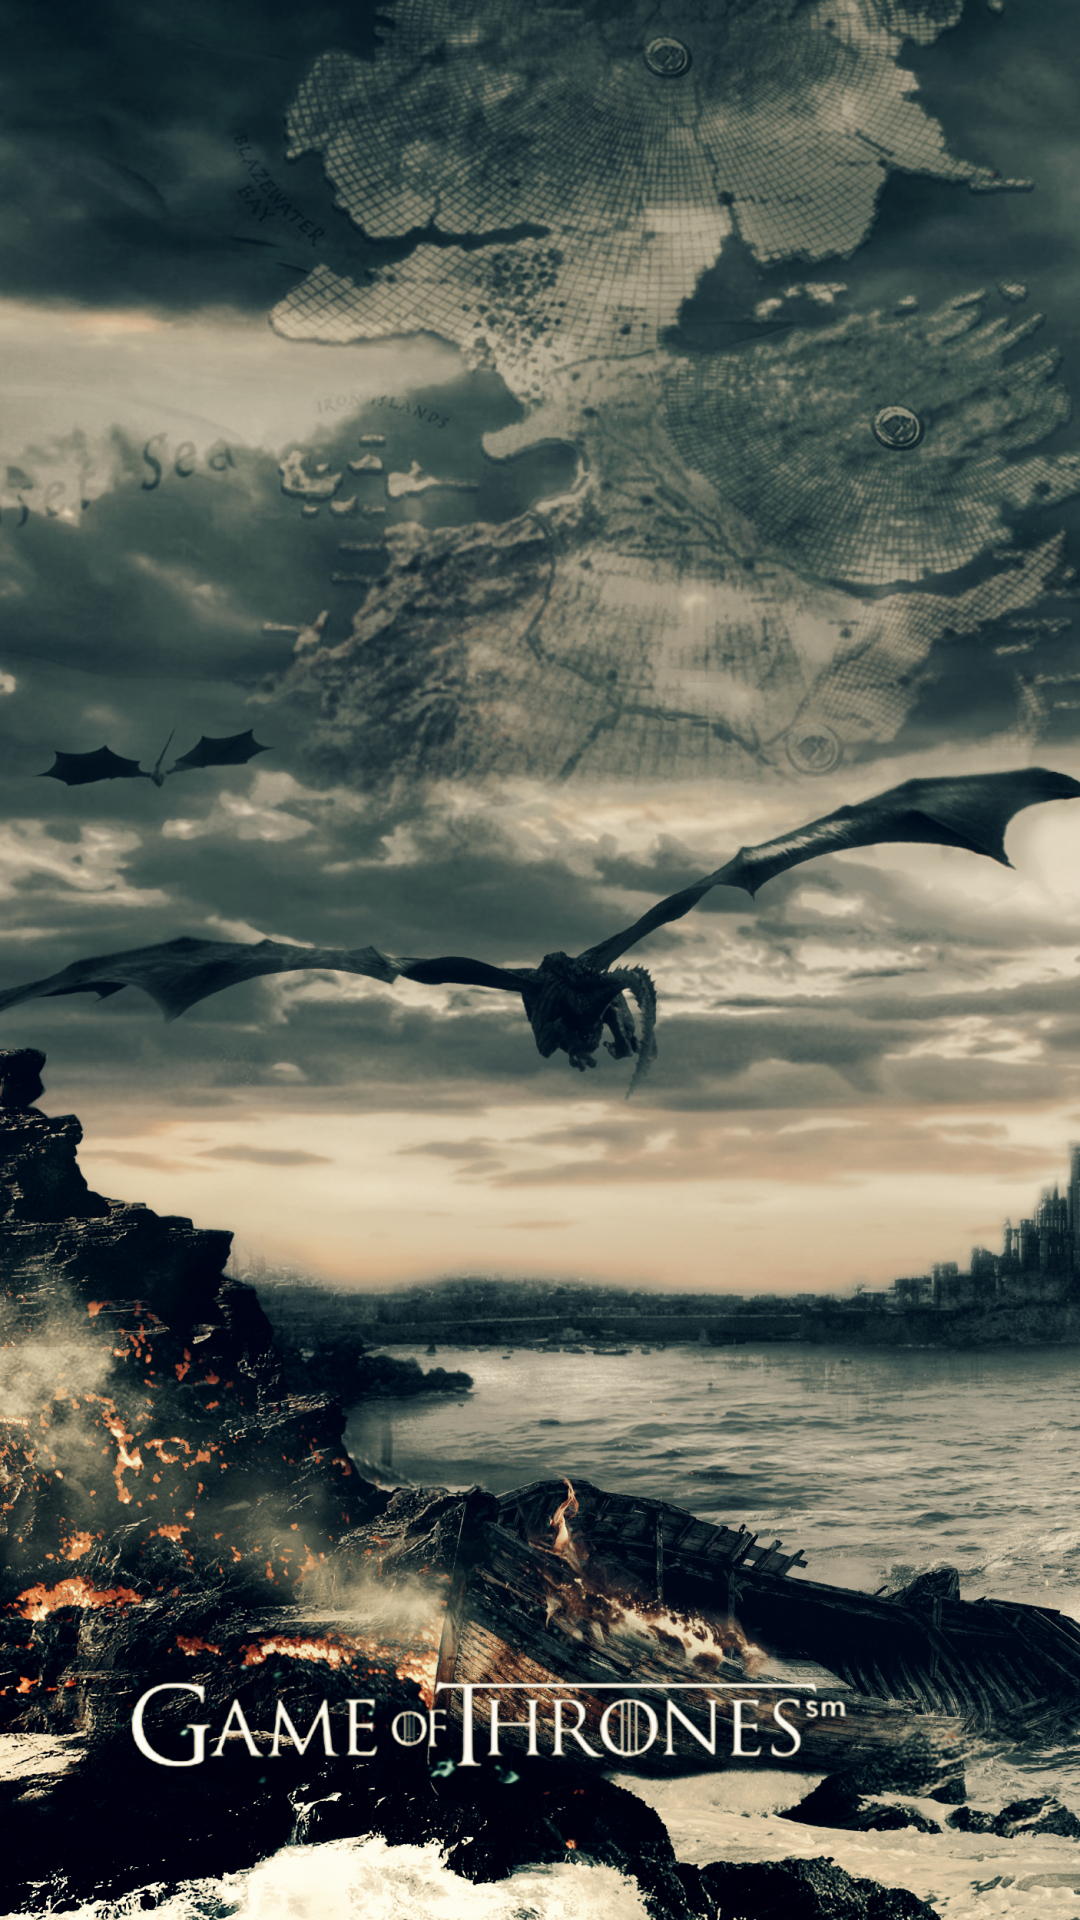 Tv Show Game Of Thrones 1080x1920 Wallpaper Id 690525